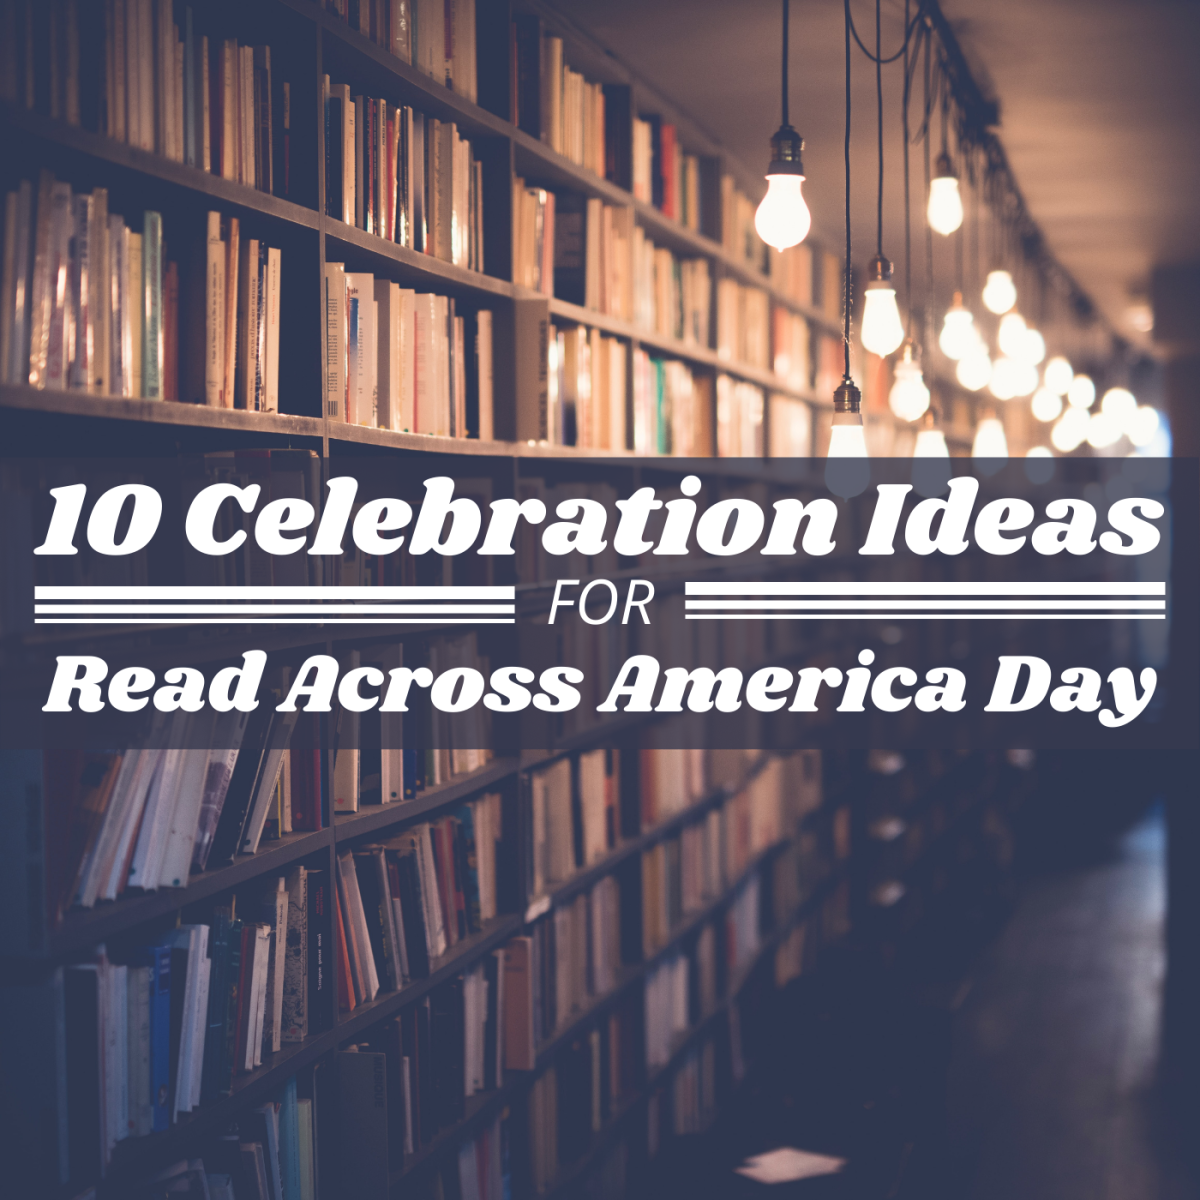 10 Fun Ways to Celebrate National Read Across America Day